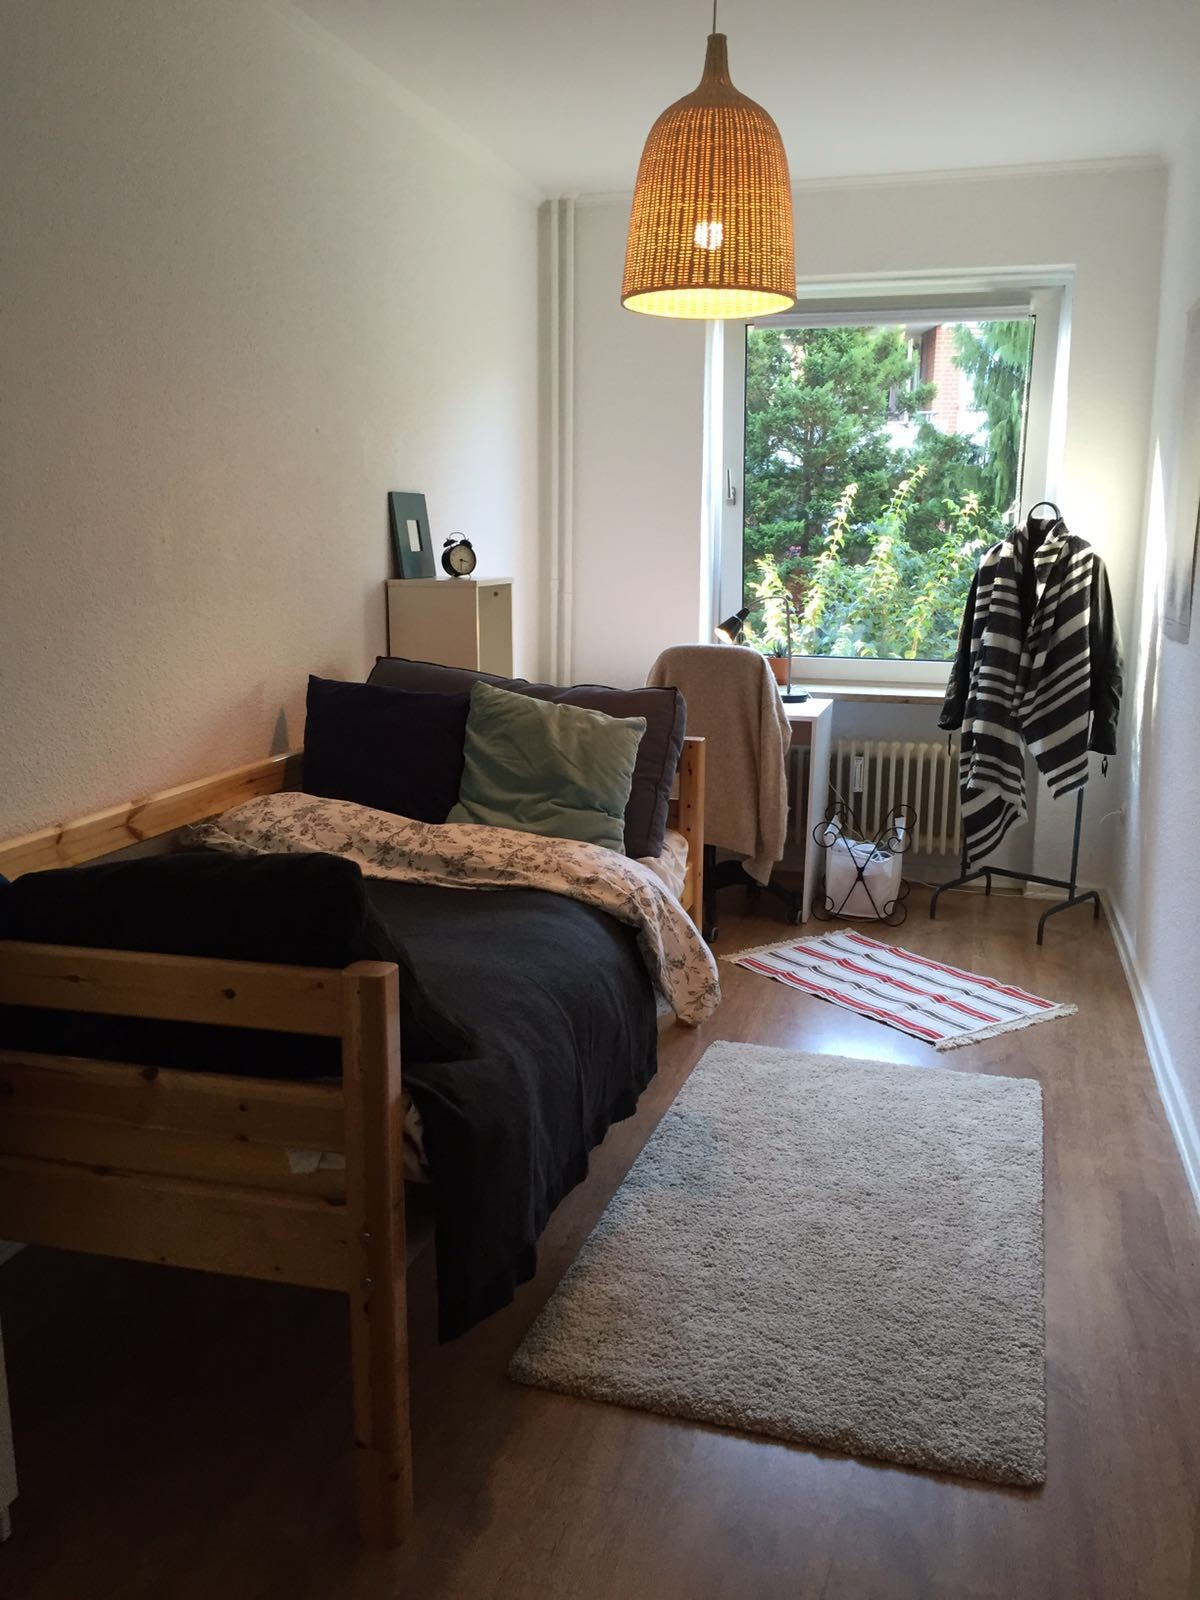 12m 2 furnished room in shared apartment with 2 students for Furnished room